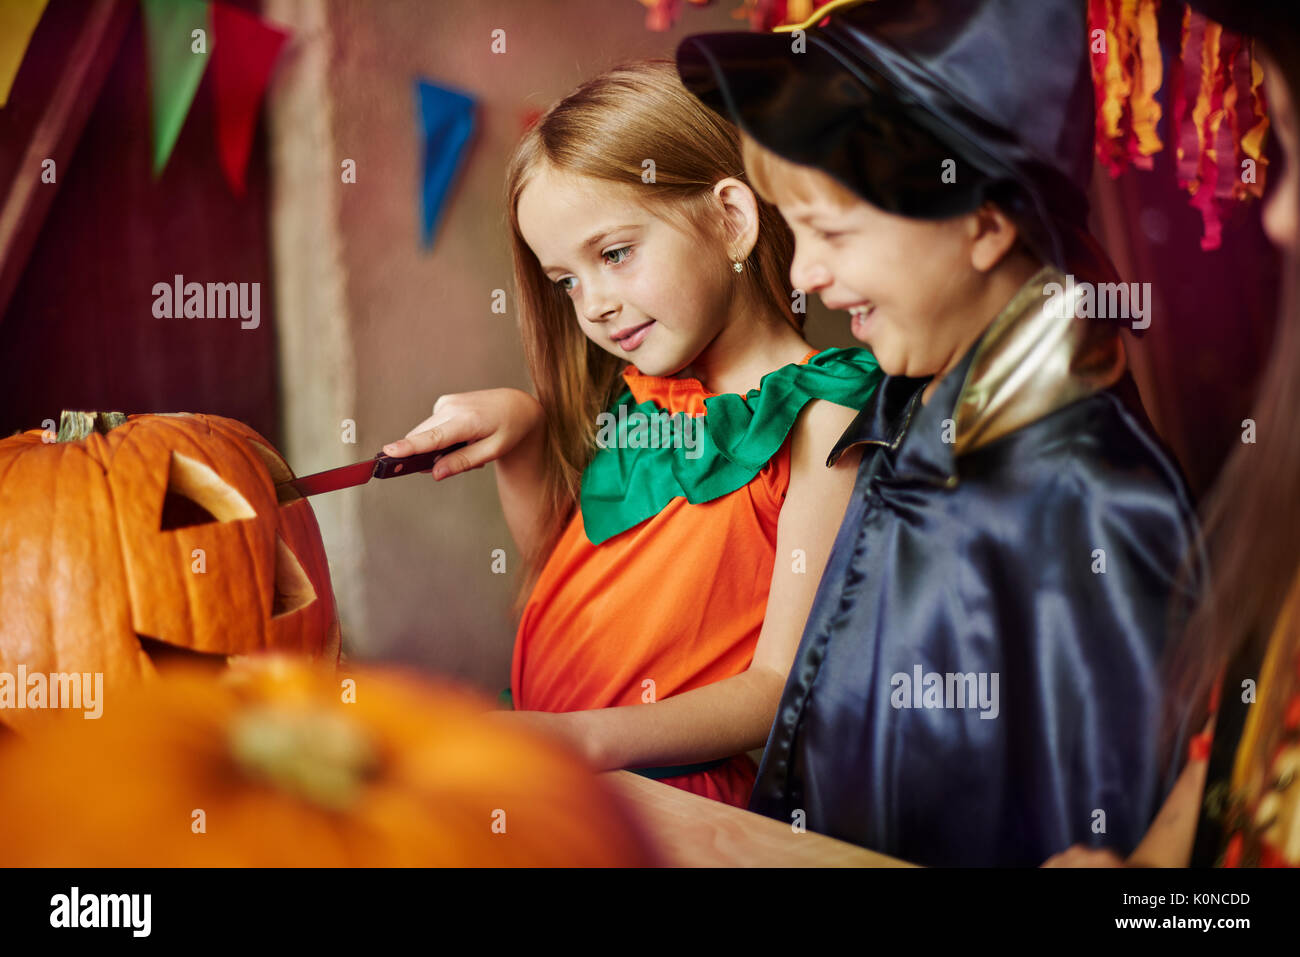 Children affectionated with carving a pumpkin - Stock Image